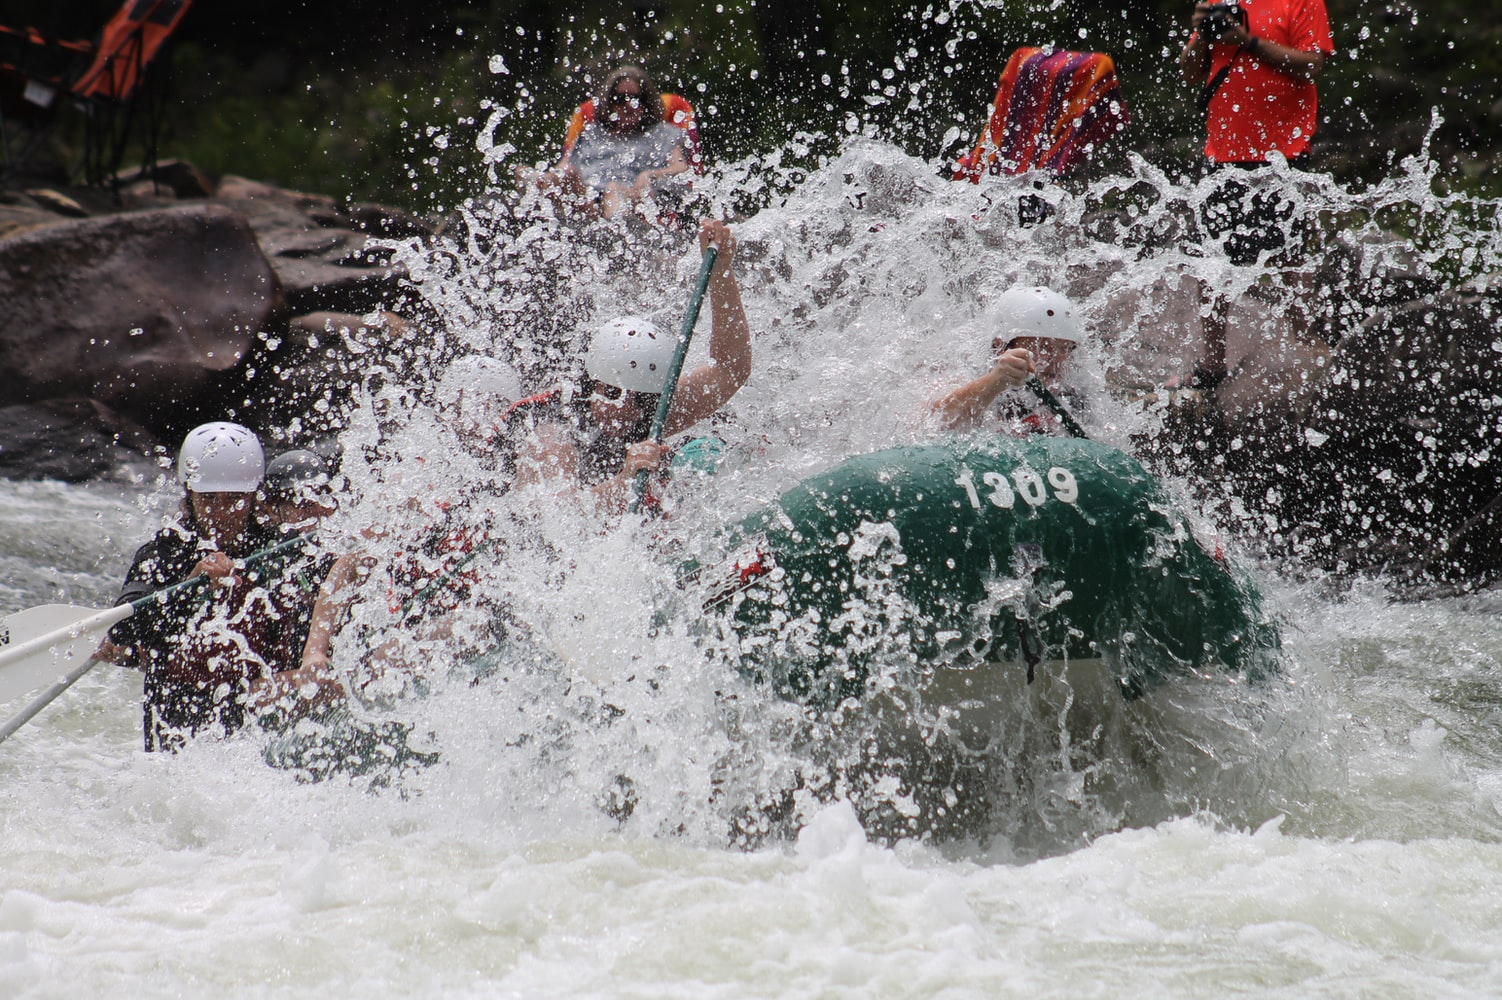 River Rafting- Top adventure activity in Thailand.